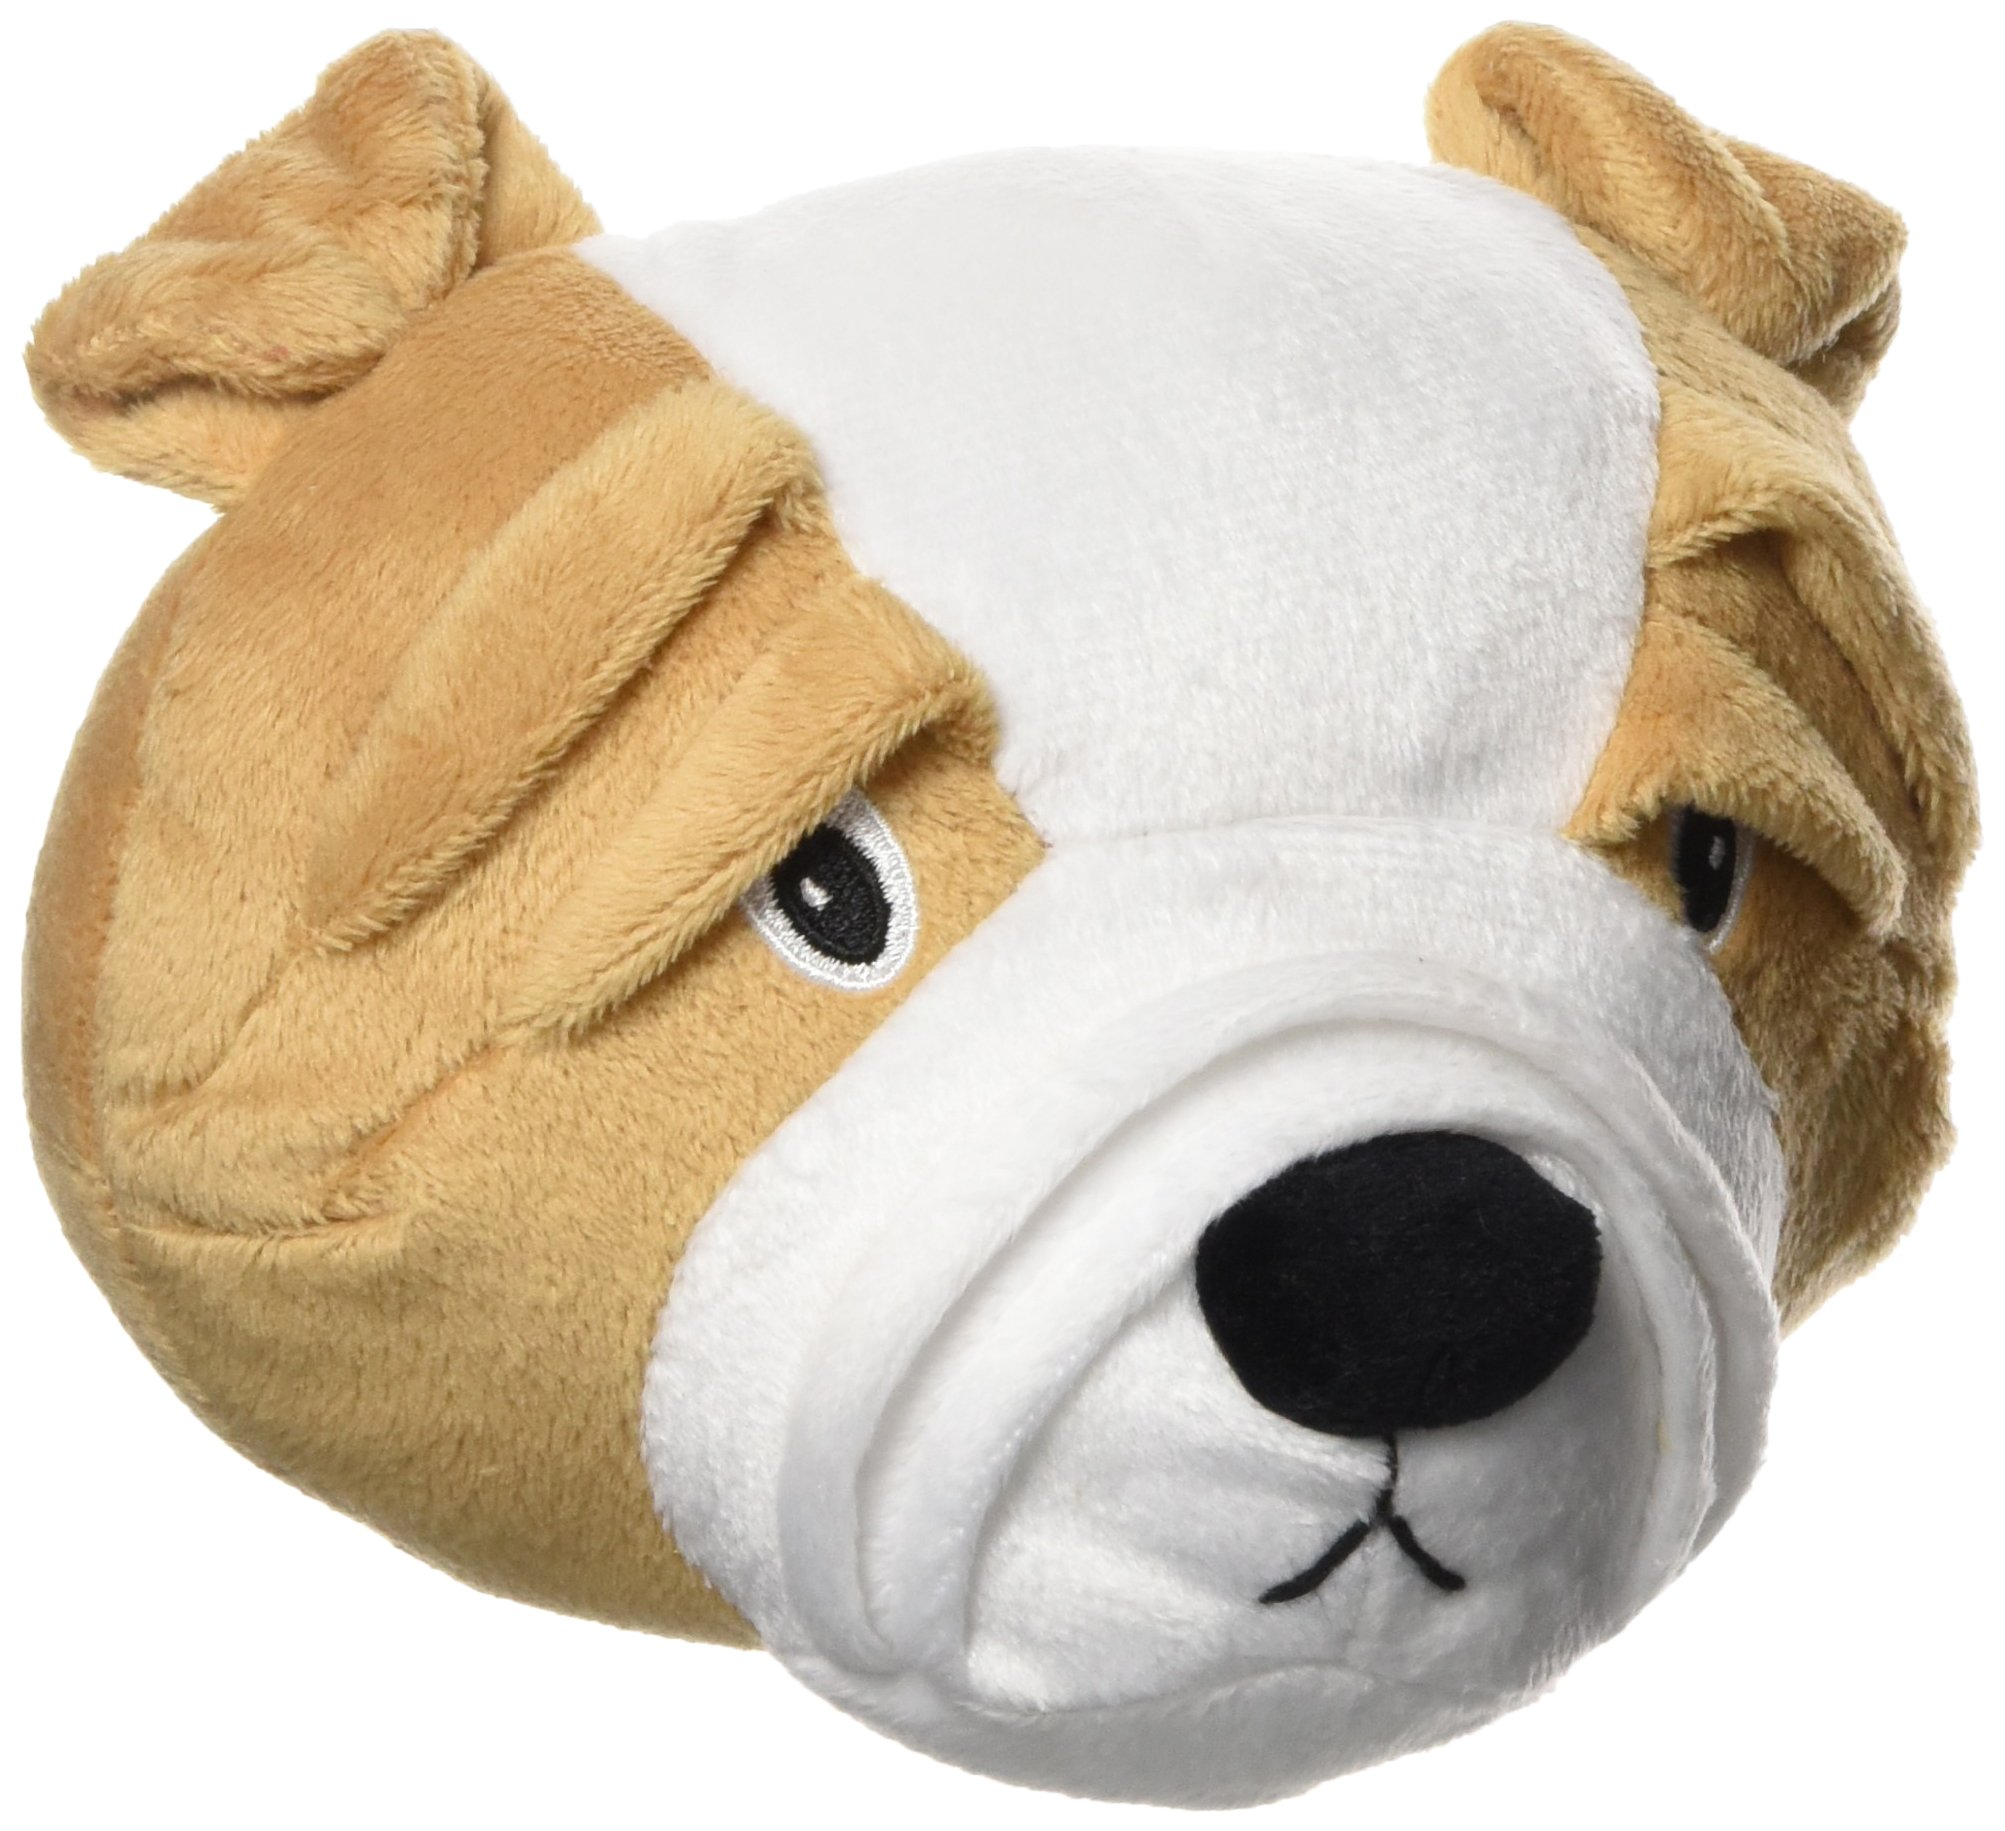 ZEUS Bulldog Motorized Bouncing Toy by ZEUS